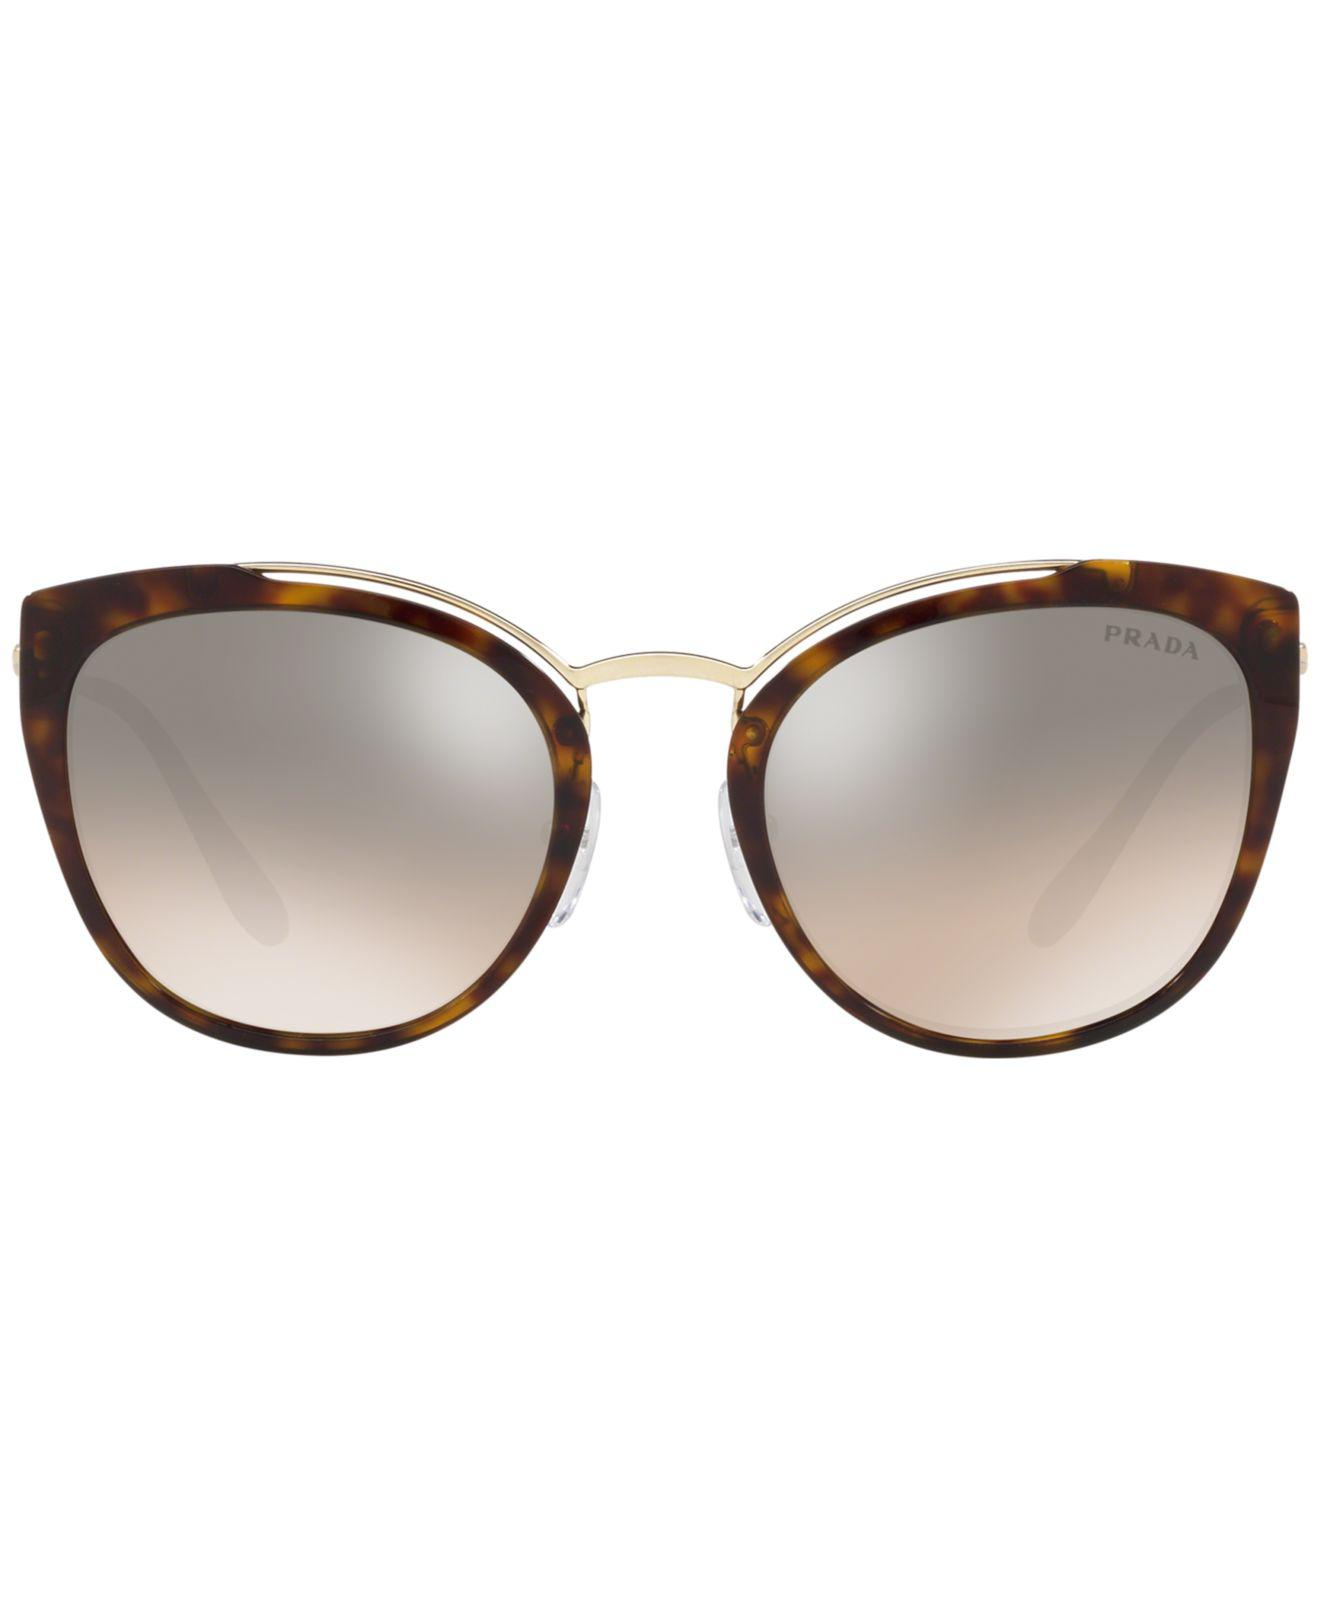 698946f90772 Lyst - Prada 54mm Square Sunglasses in Brown